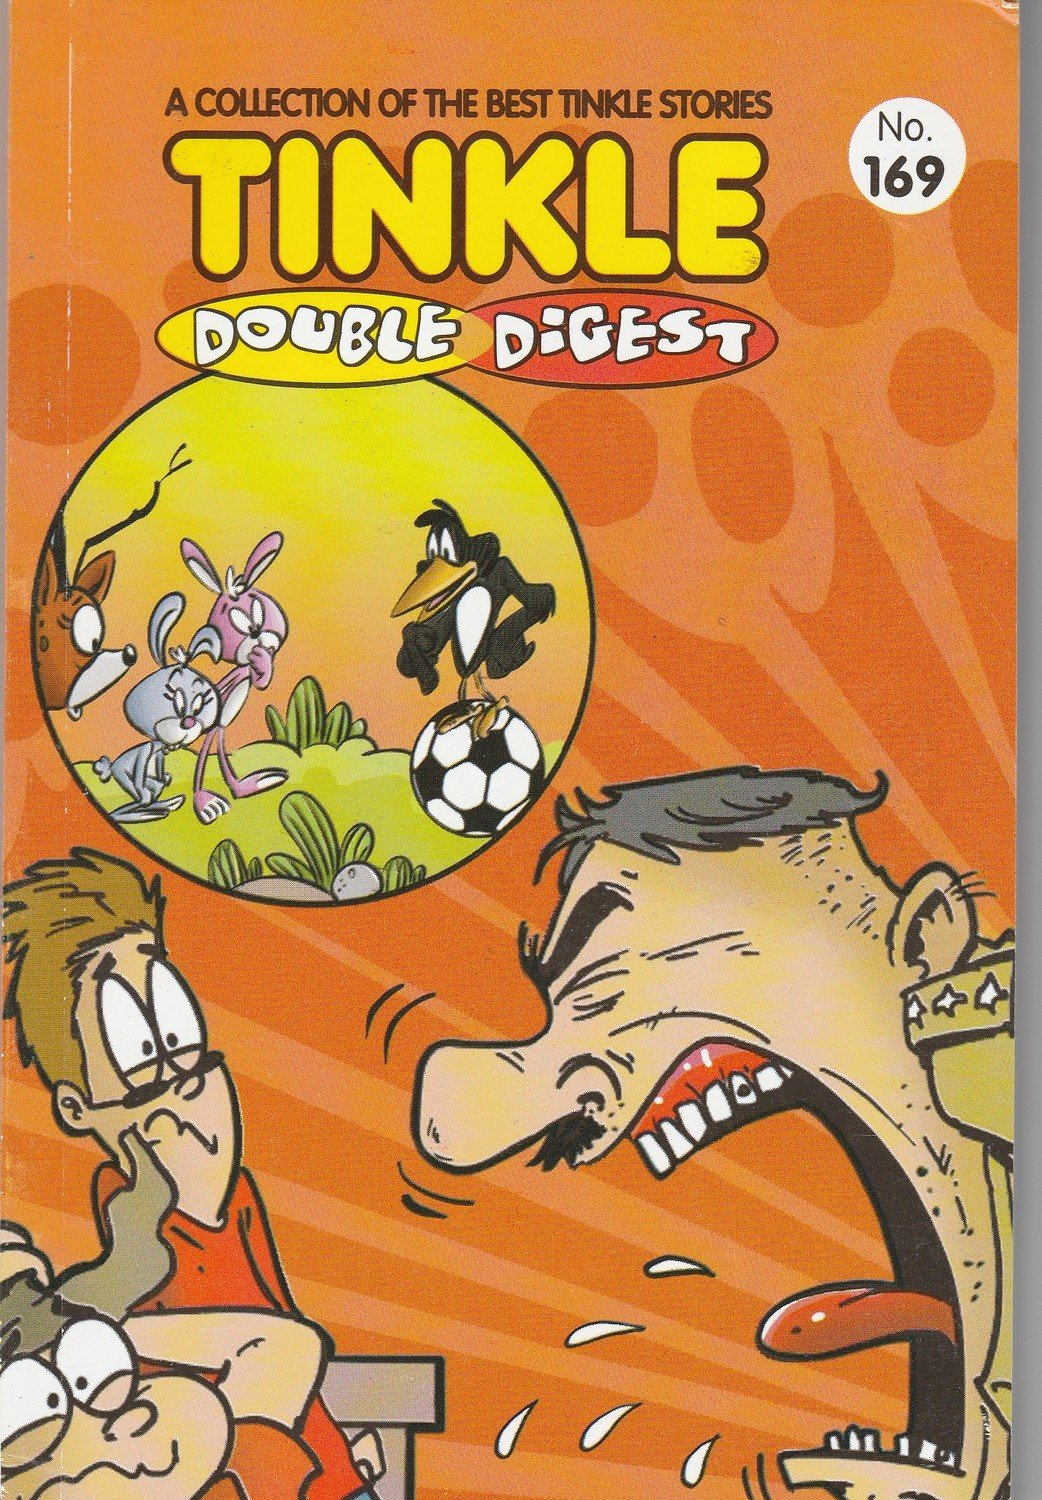 Tinkle Double Digest - No. 169